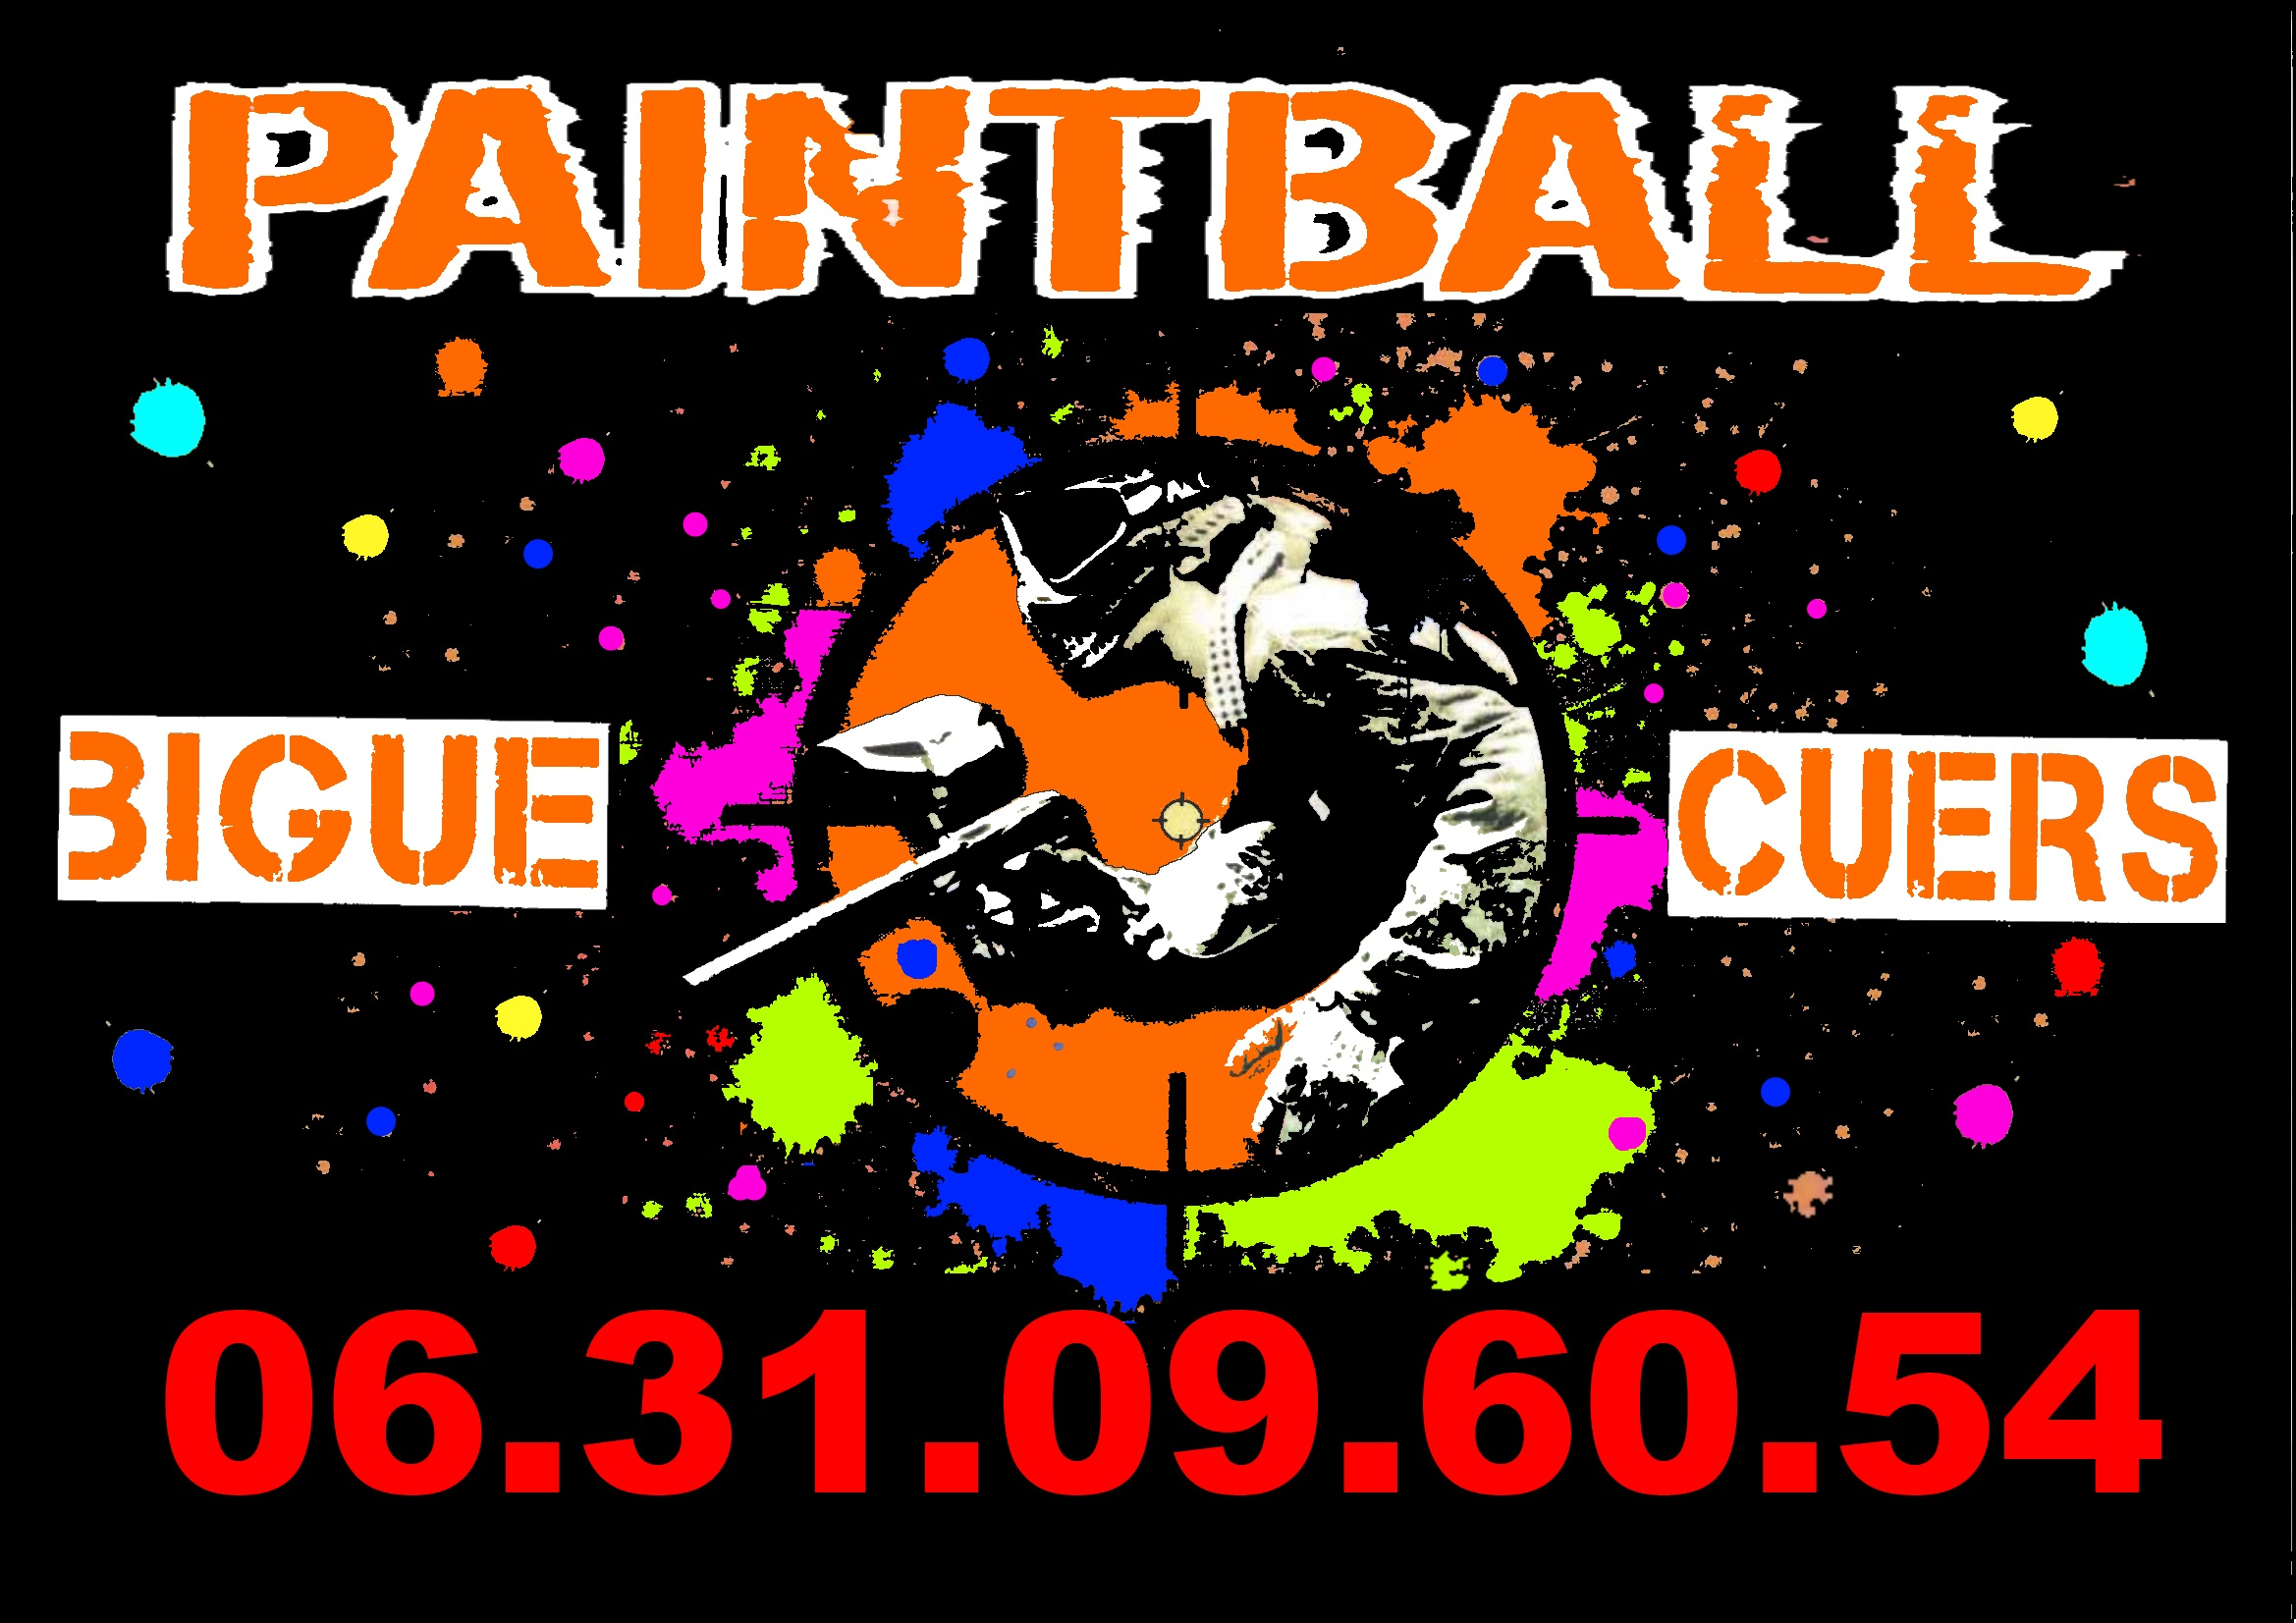 BIGUE PAINTBALL CUERS CUERS